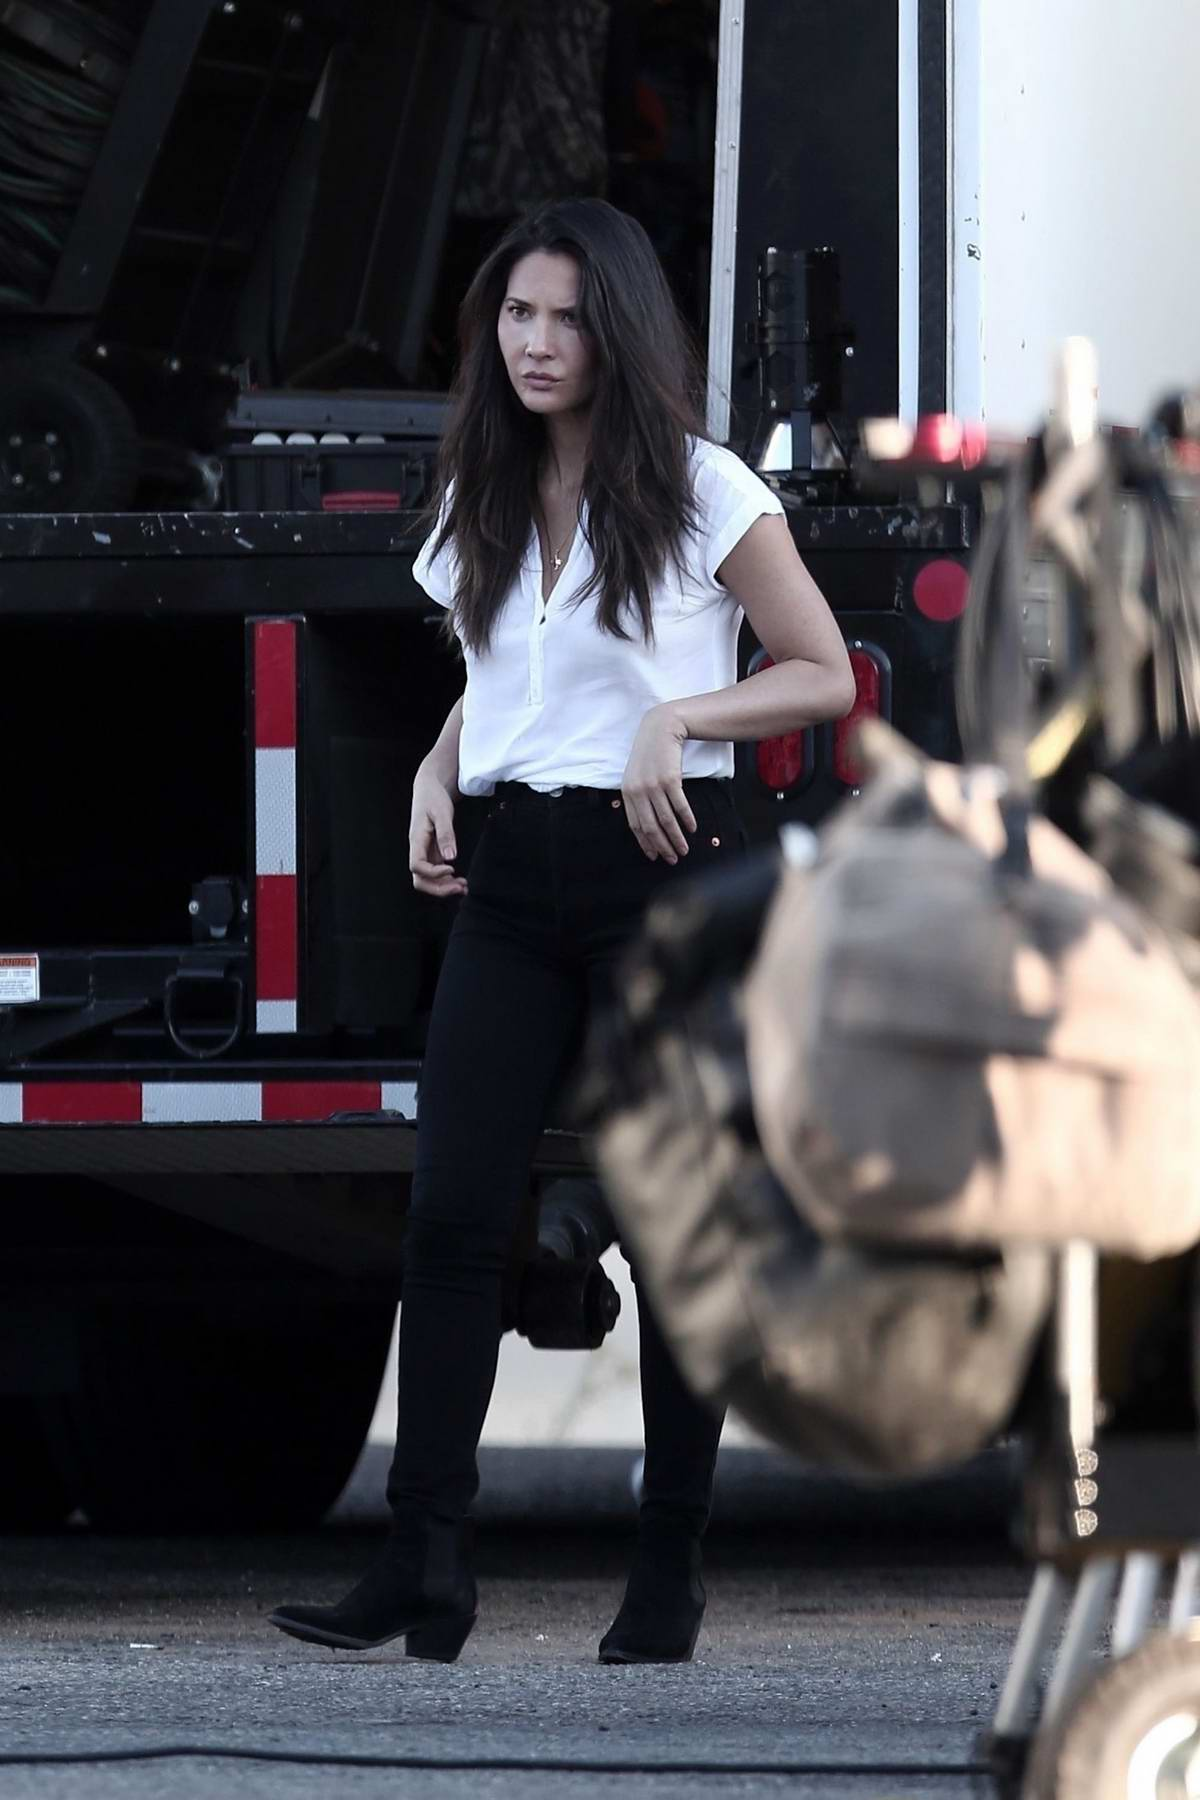 Olivia Munn seen wearing a white top and black jeans while on the set of her new movie 'Violet' in Los Angeles